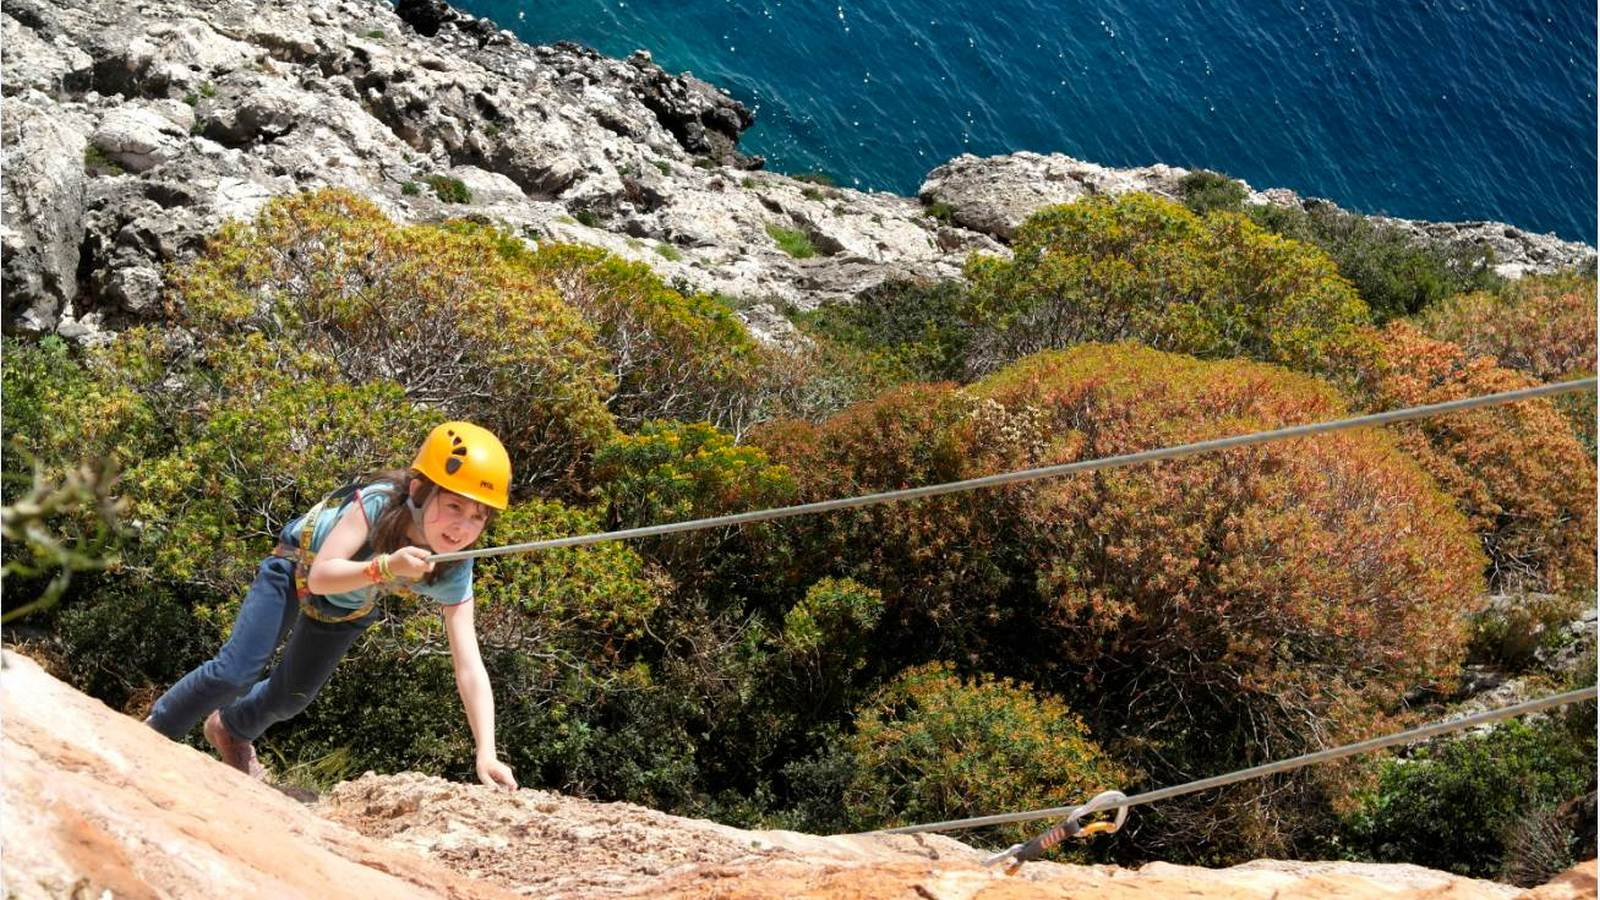 The Westin Resort Costa Navarino Messinia Greece Activities Navarino Outdoors Rock Climbing Kids